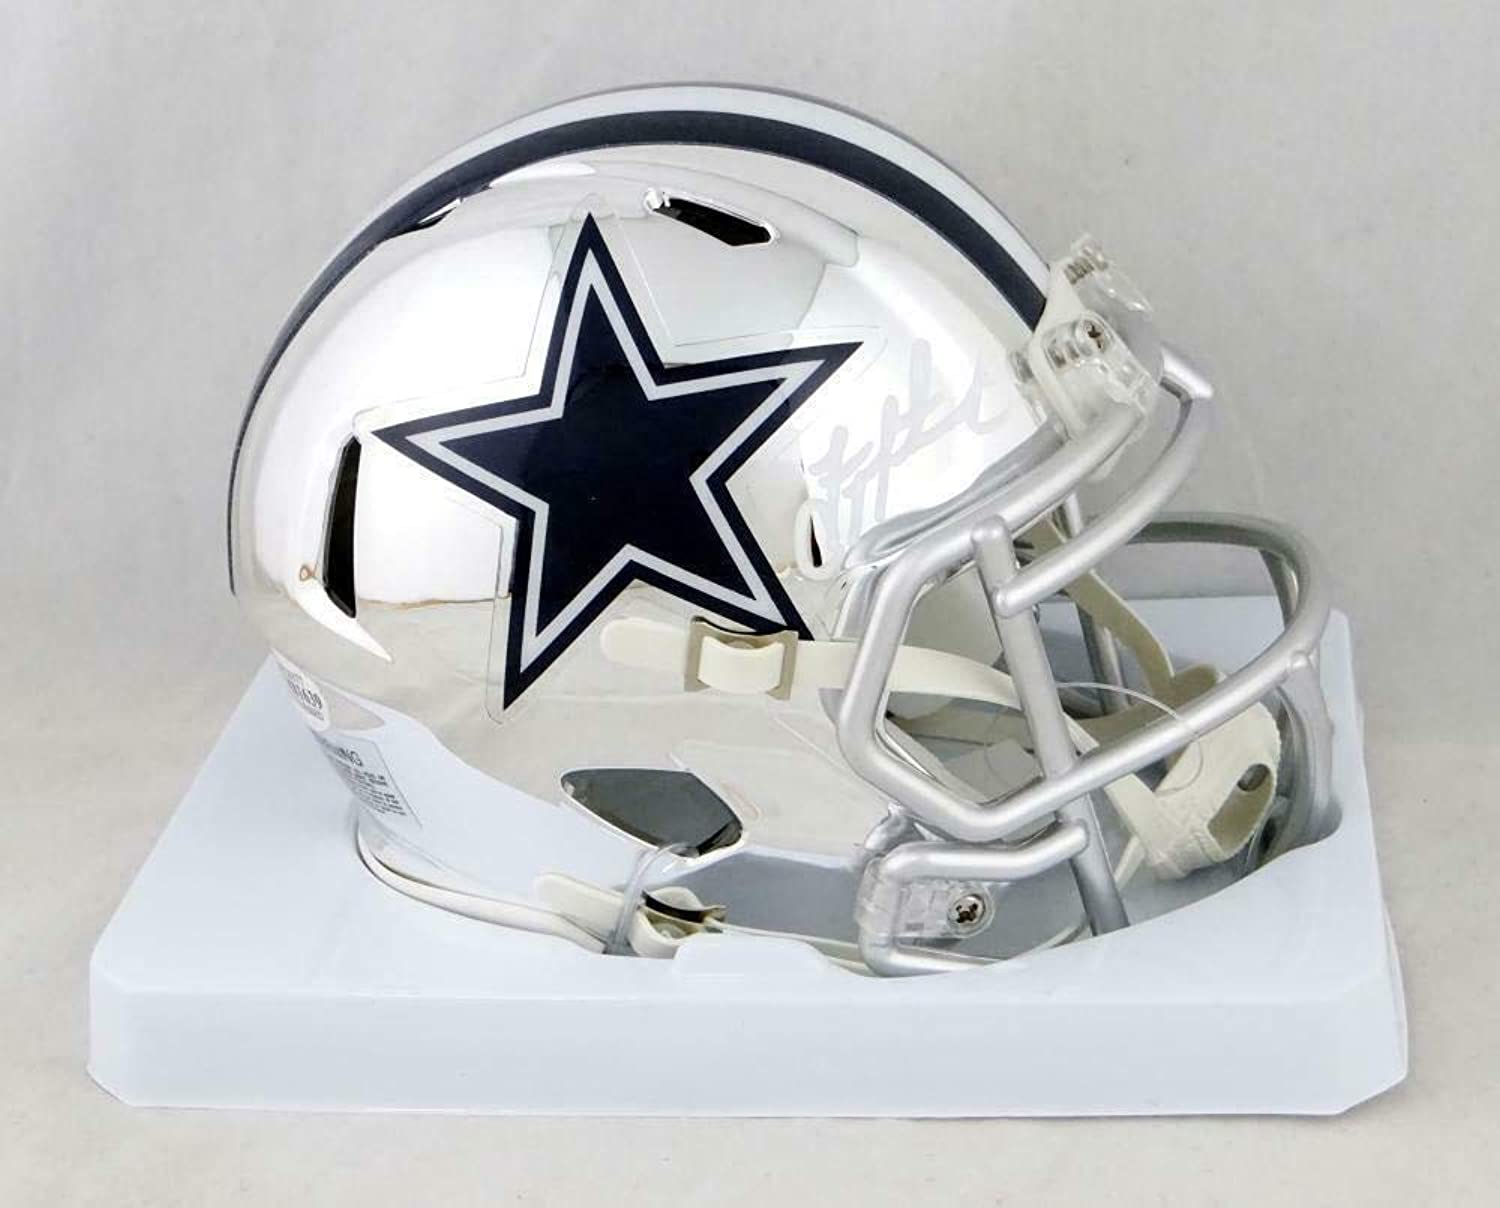 Troy Aikman Signed Mini Helmet  Chrome Beckett Auth White  Beckett Authentication  Autographed NFL Mini Helmets